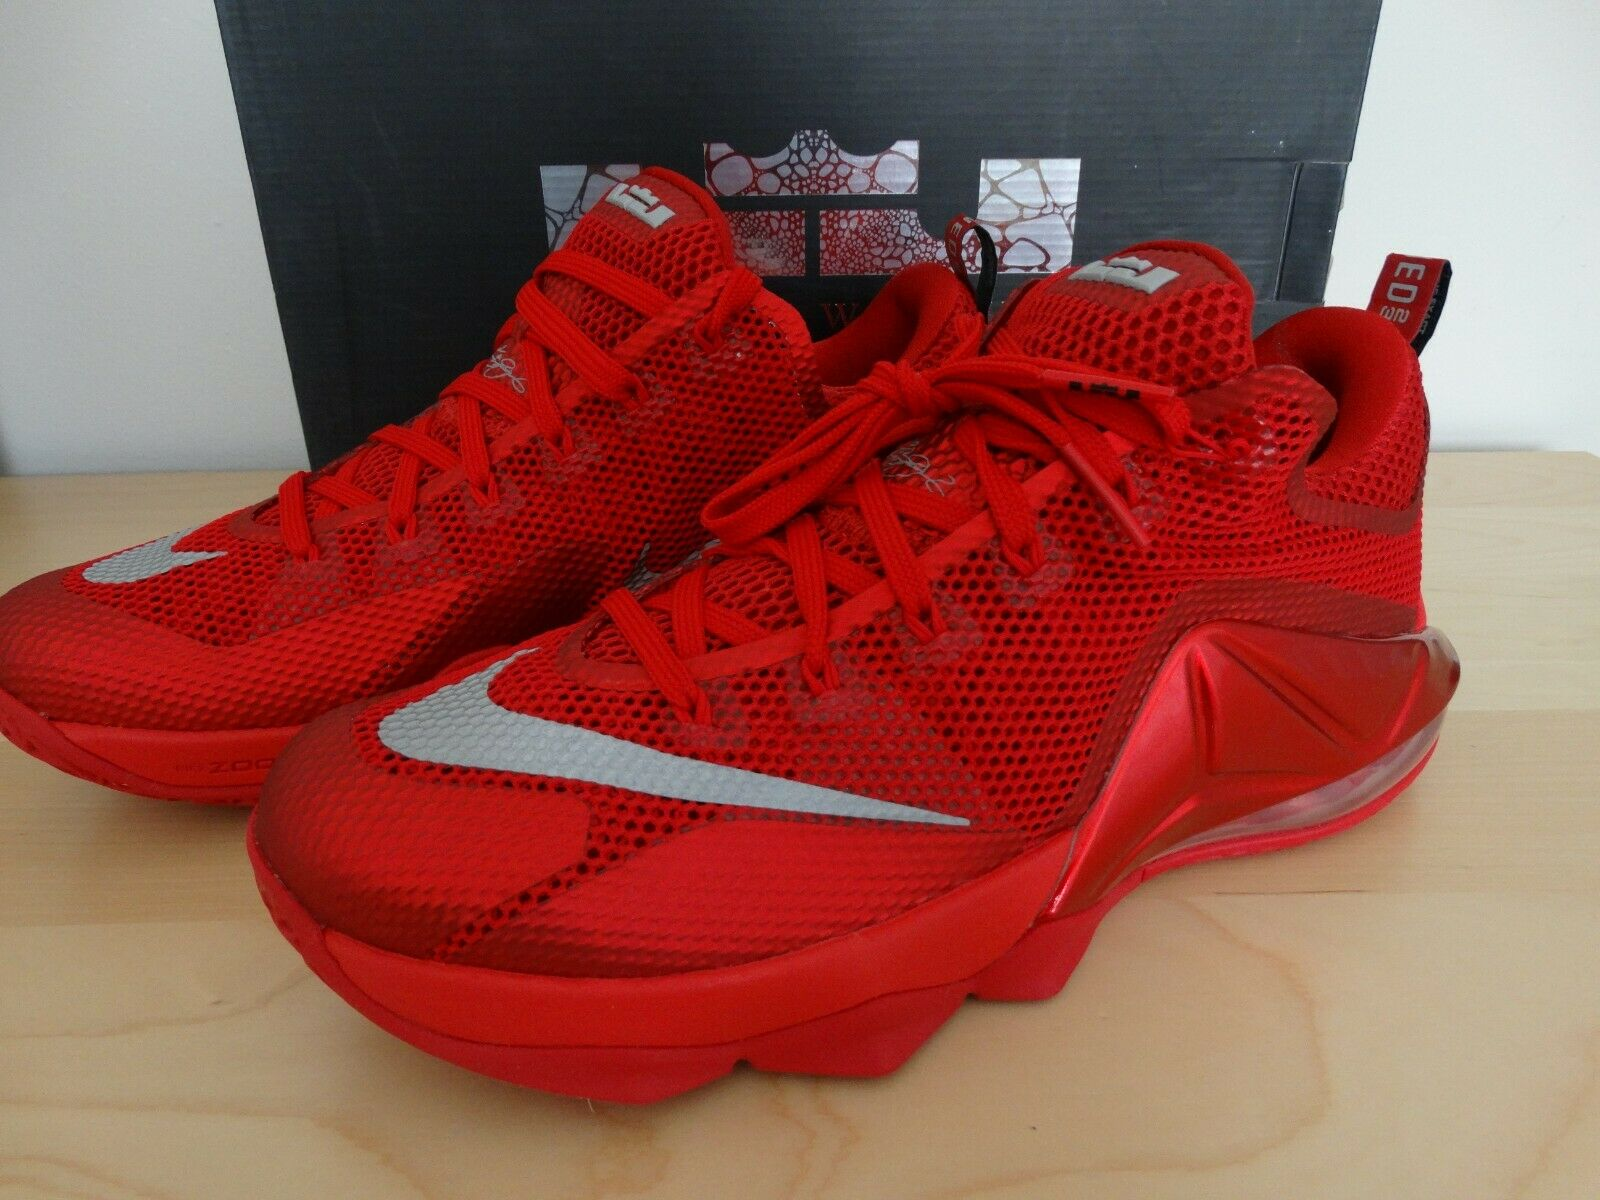 separation shoes 8351a a67e2 NIKE LEBRON LEBRON LEBRON JAMES 12 XII LOW, NEW IN BOX MEN S SIZE 10.5 RED